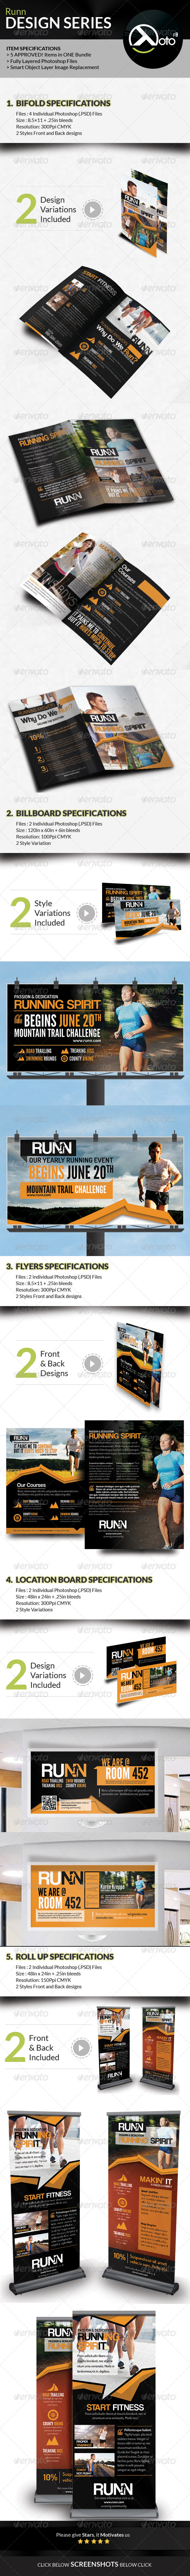 GraphicRiver Runn Marathon Running Club Fitness Design Bundle 8083730